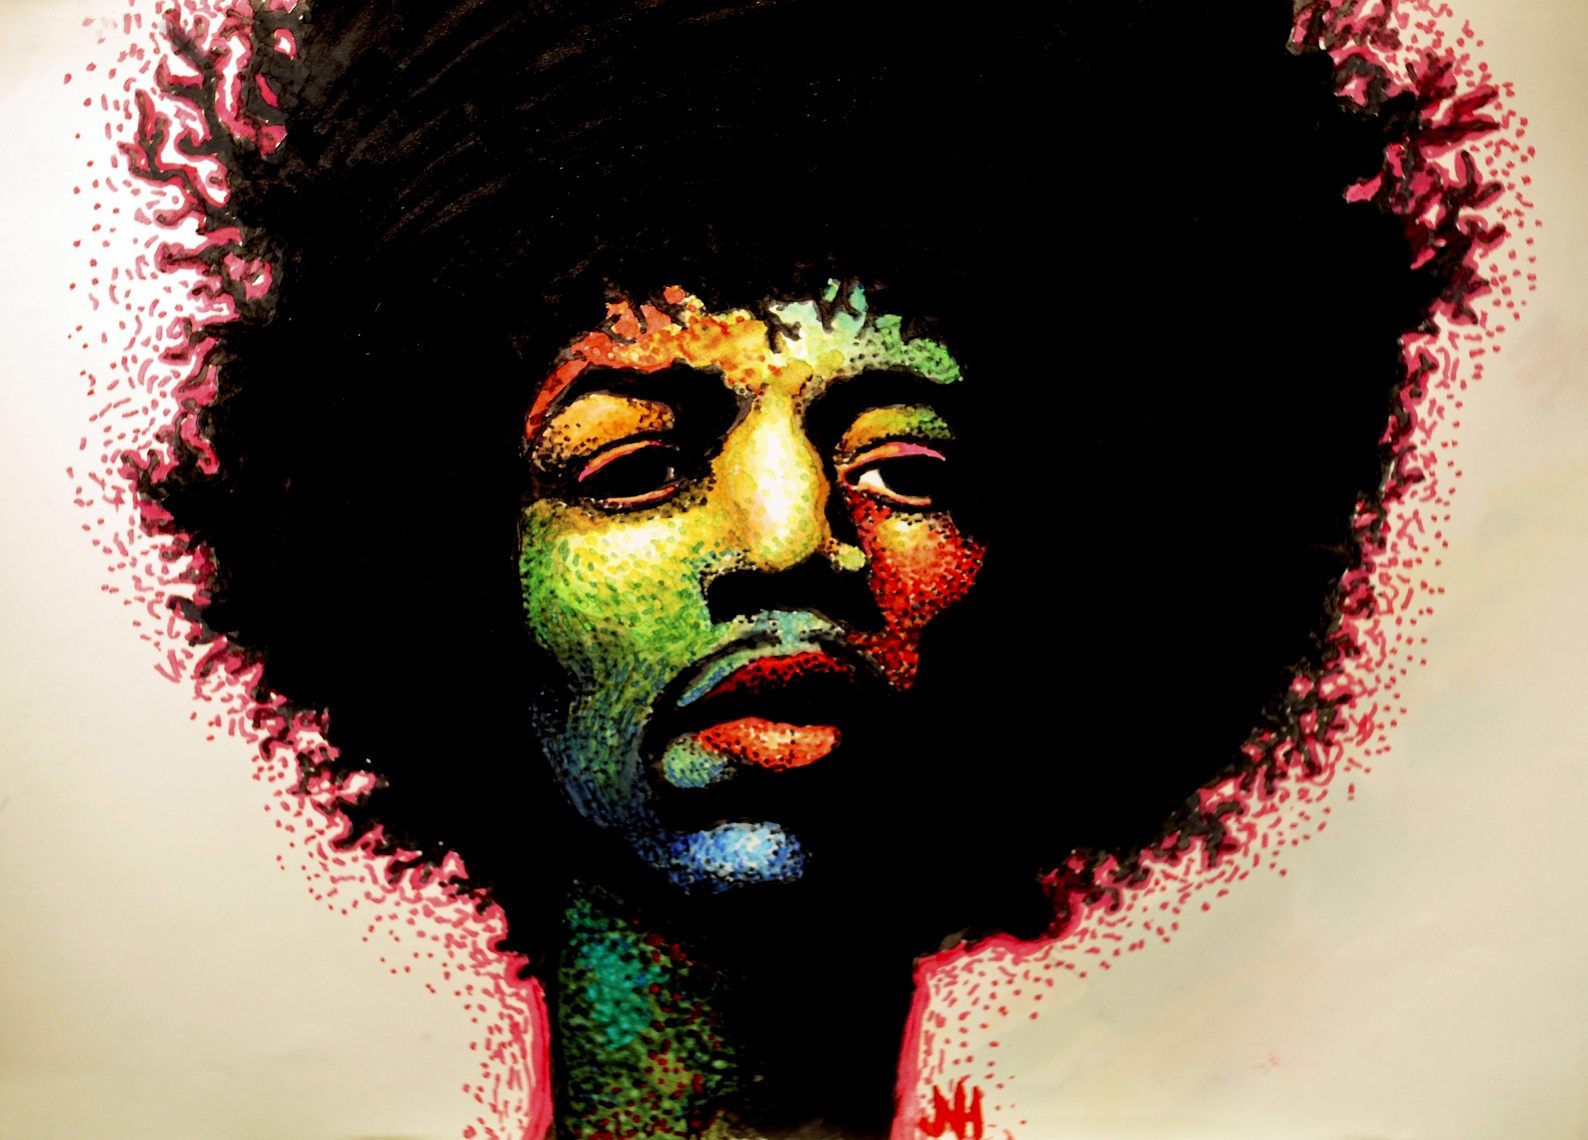 186052_johannek_happy-birthday-jimi-hendrix